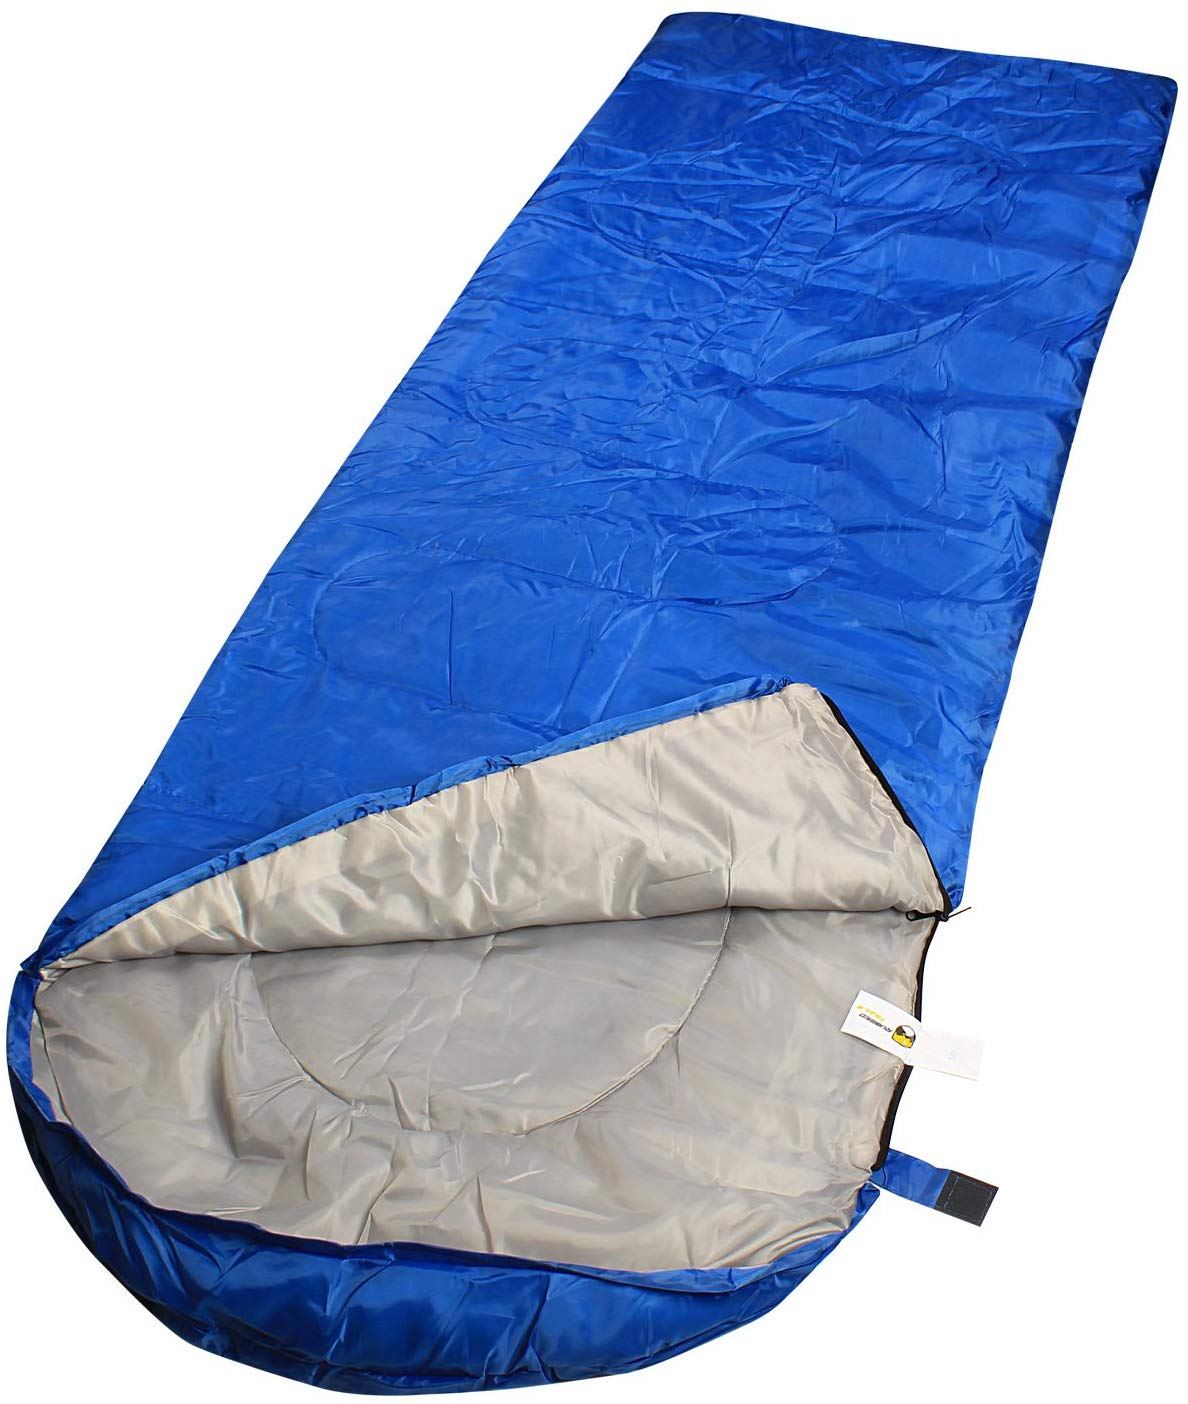 RuggedTrails Sleeping Bag